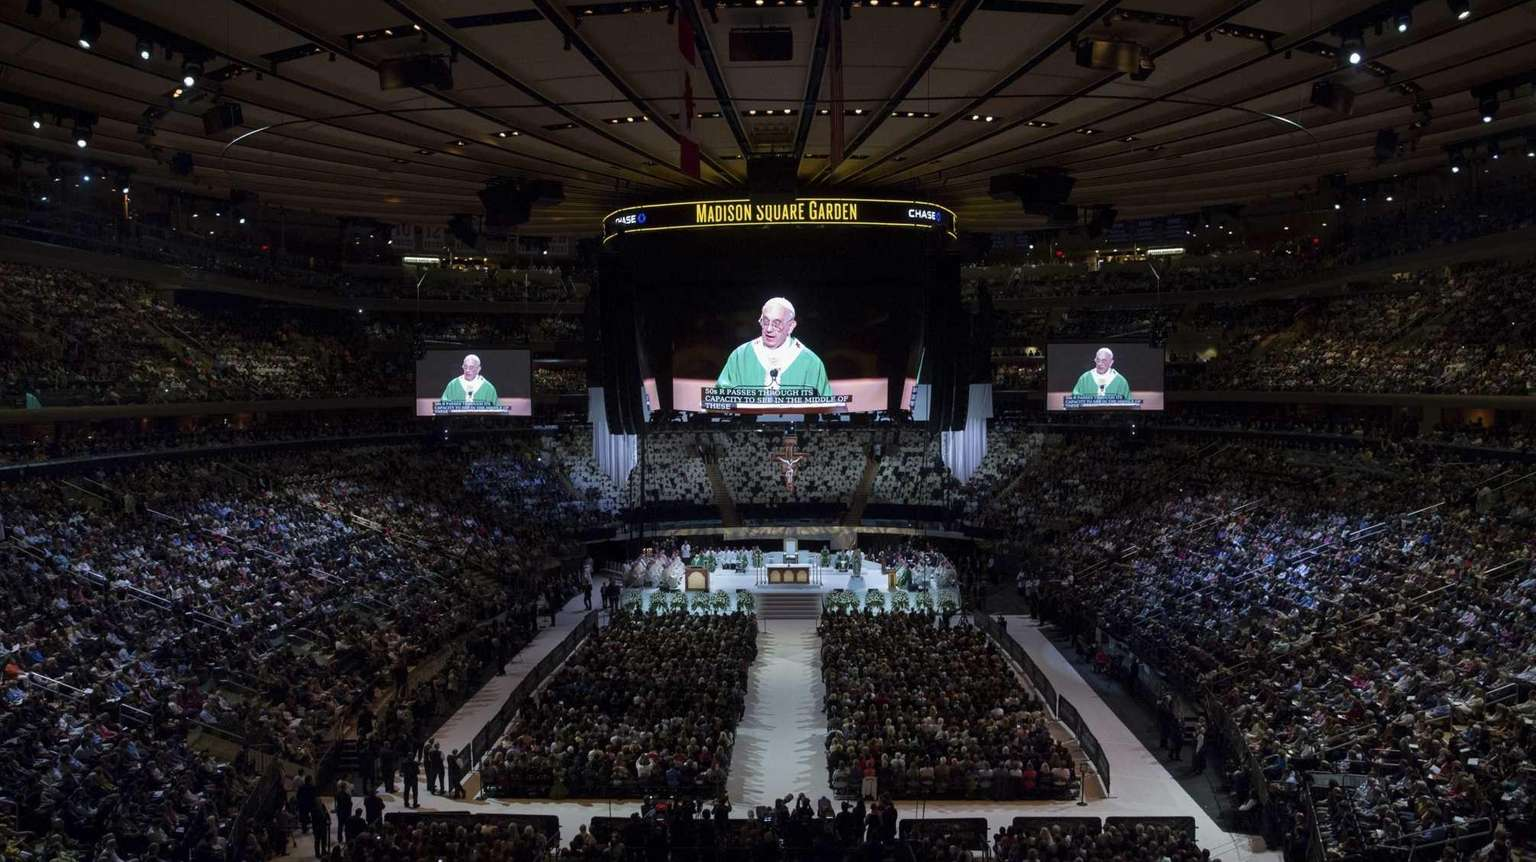 Pope asks faithful to break out of 'Big City' isolation